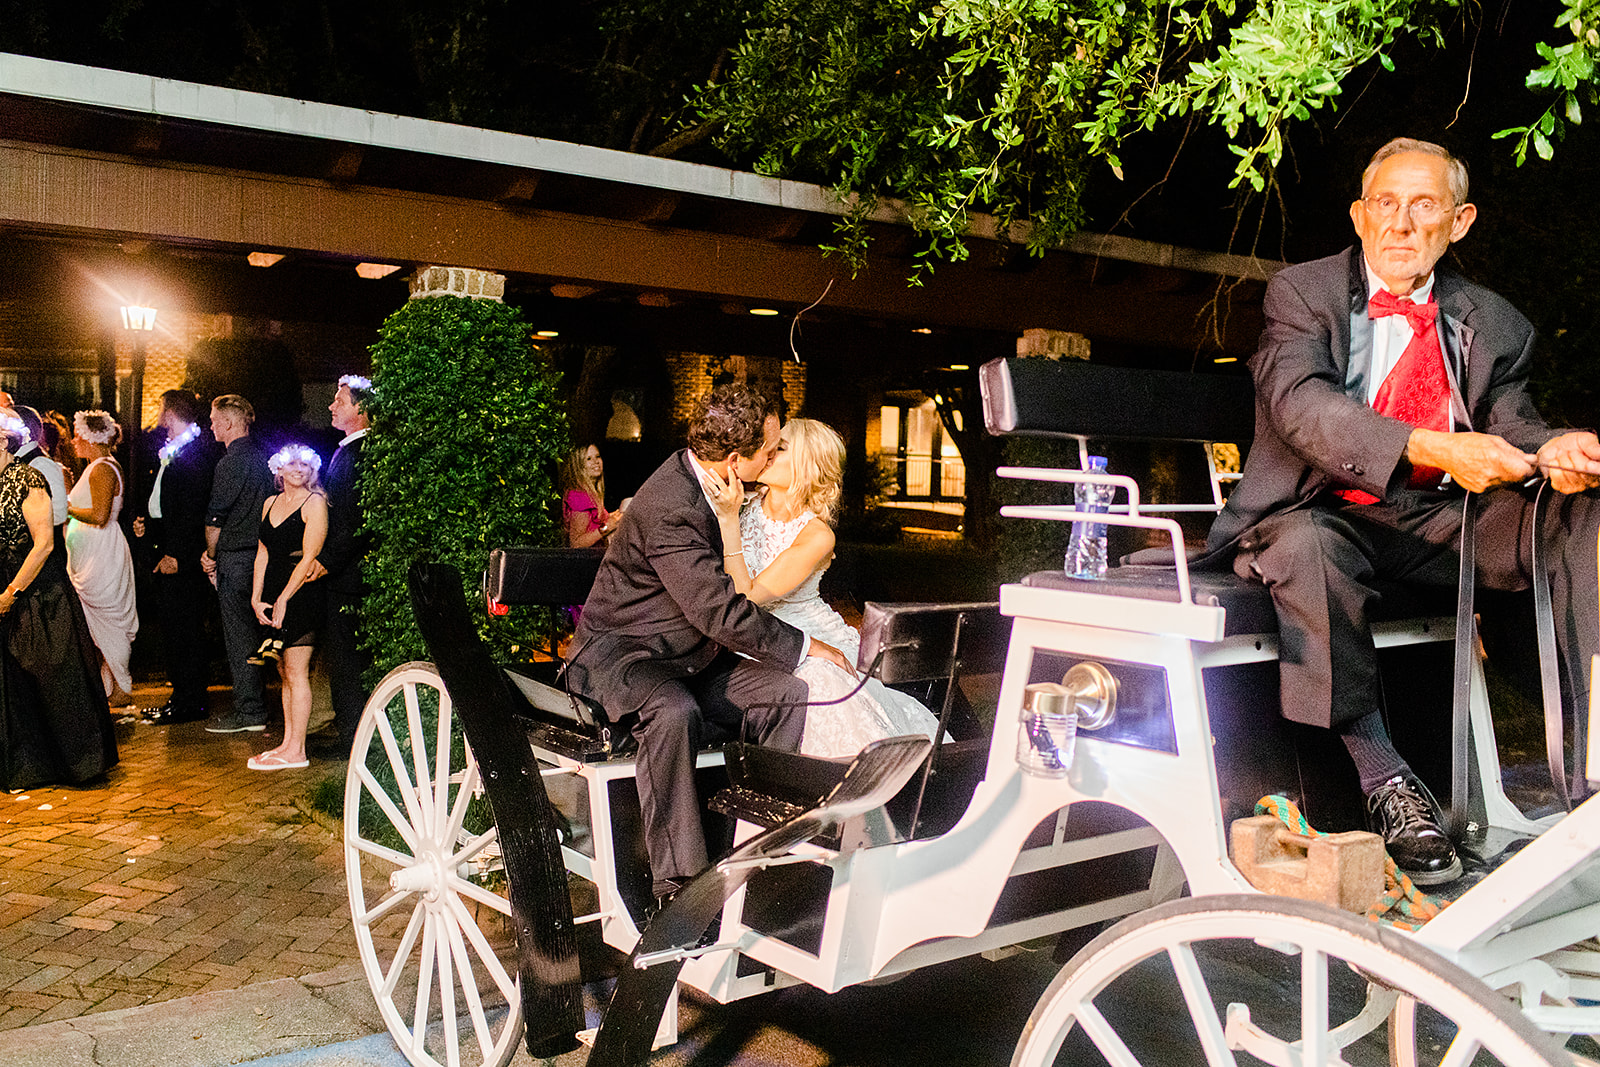 Blush-Black-Tie-Wedding-at-the-Grand-Hotel-in-Point-Clear-Alabama-Anna-Filly-Photography-Cross-Wedding-Reception-122.jpg